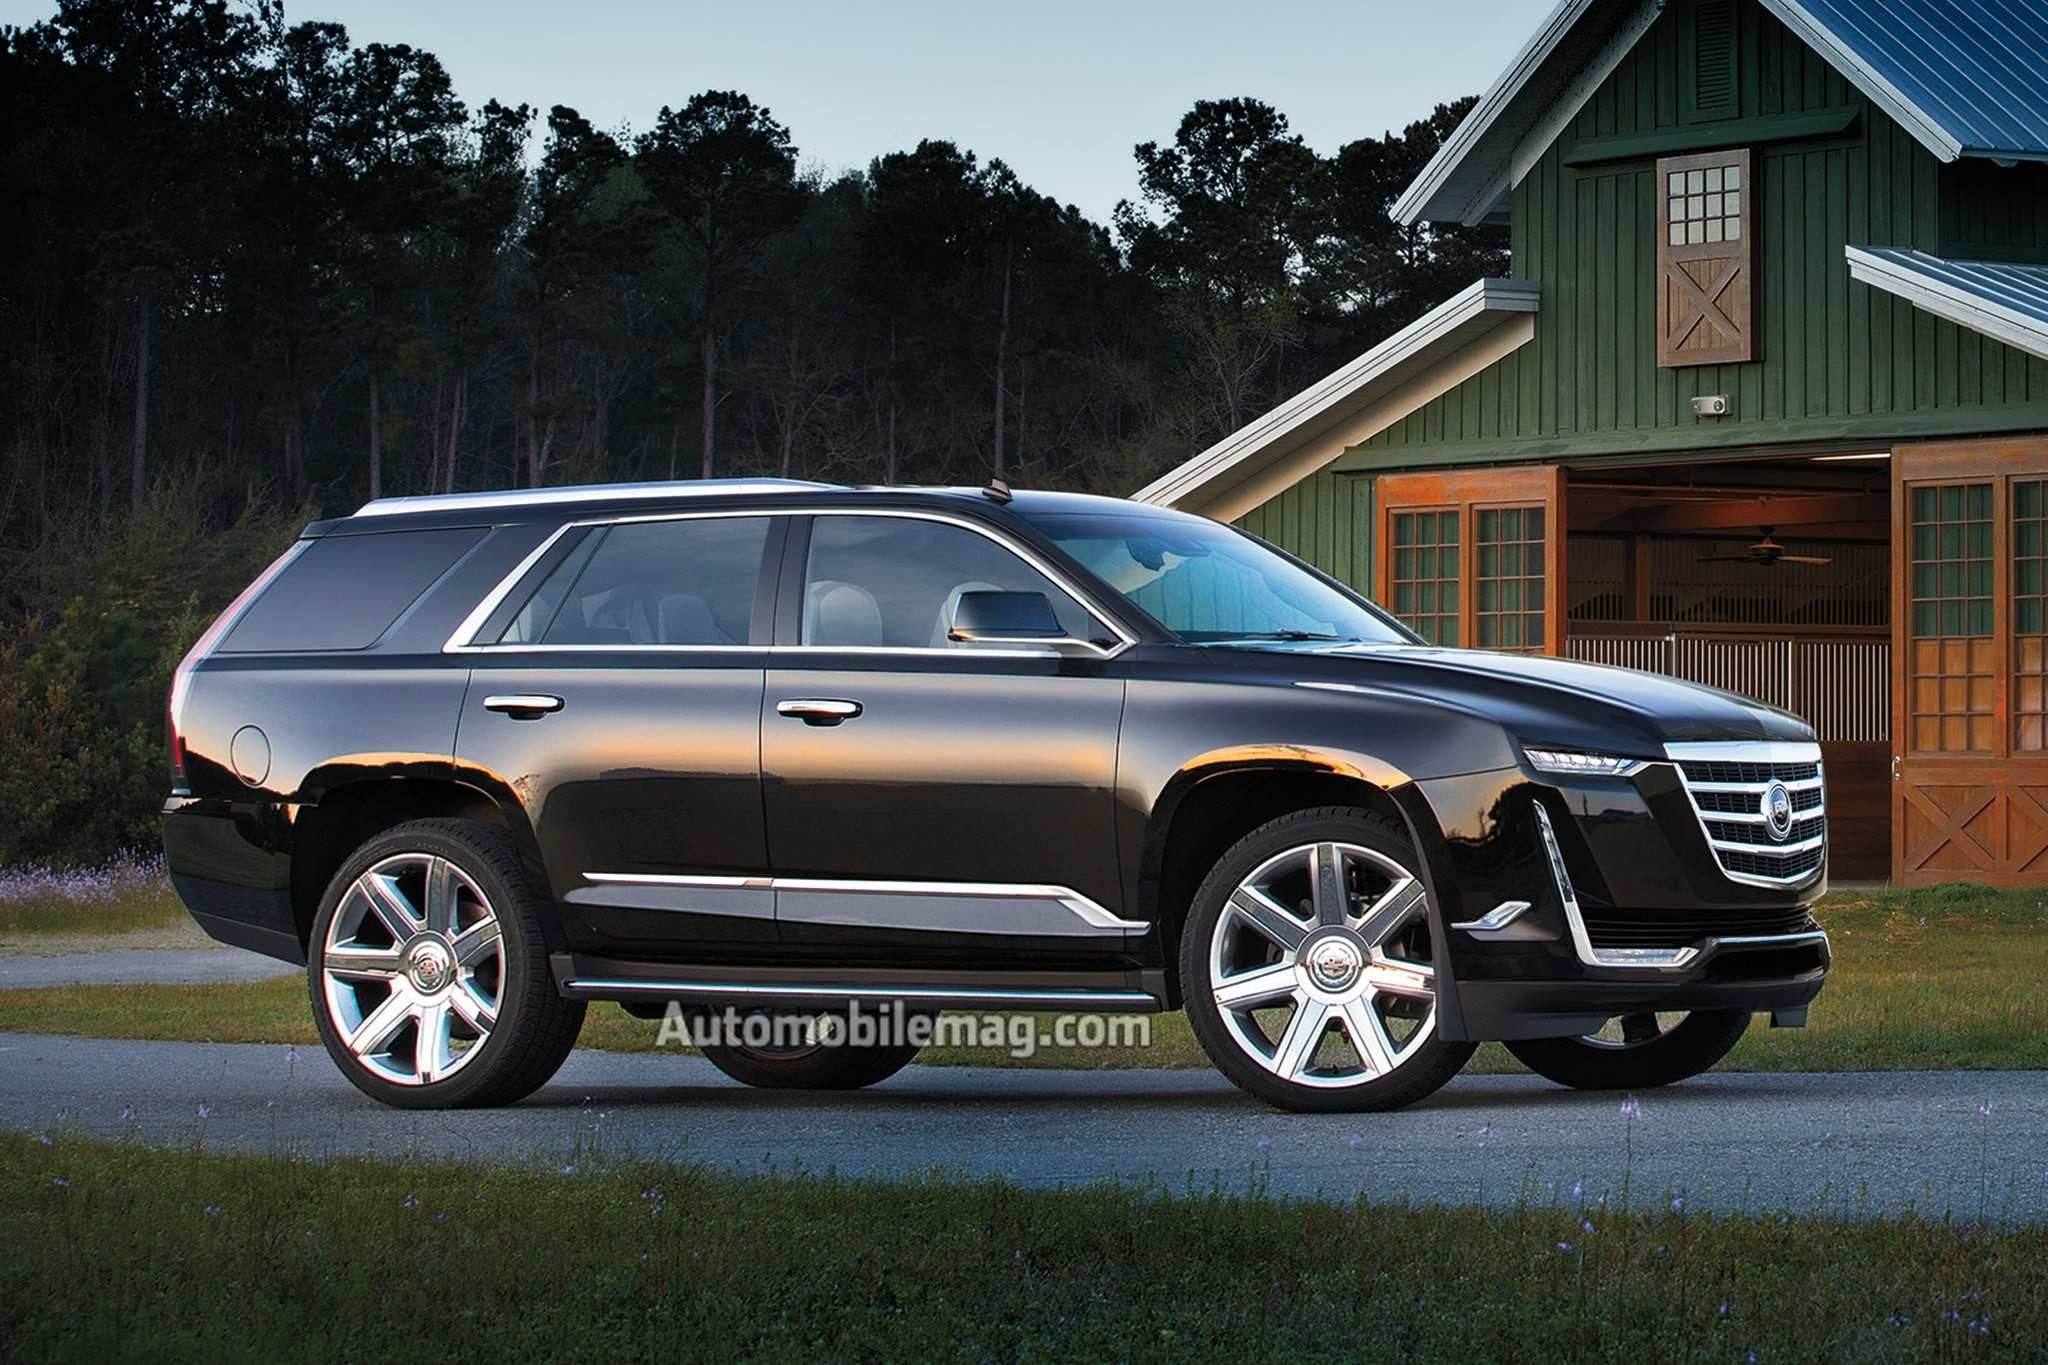 85 Concept of 2020 Cadillac Escalade Latest News Pictures for 2020 Cadillac Escalade Latest News